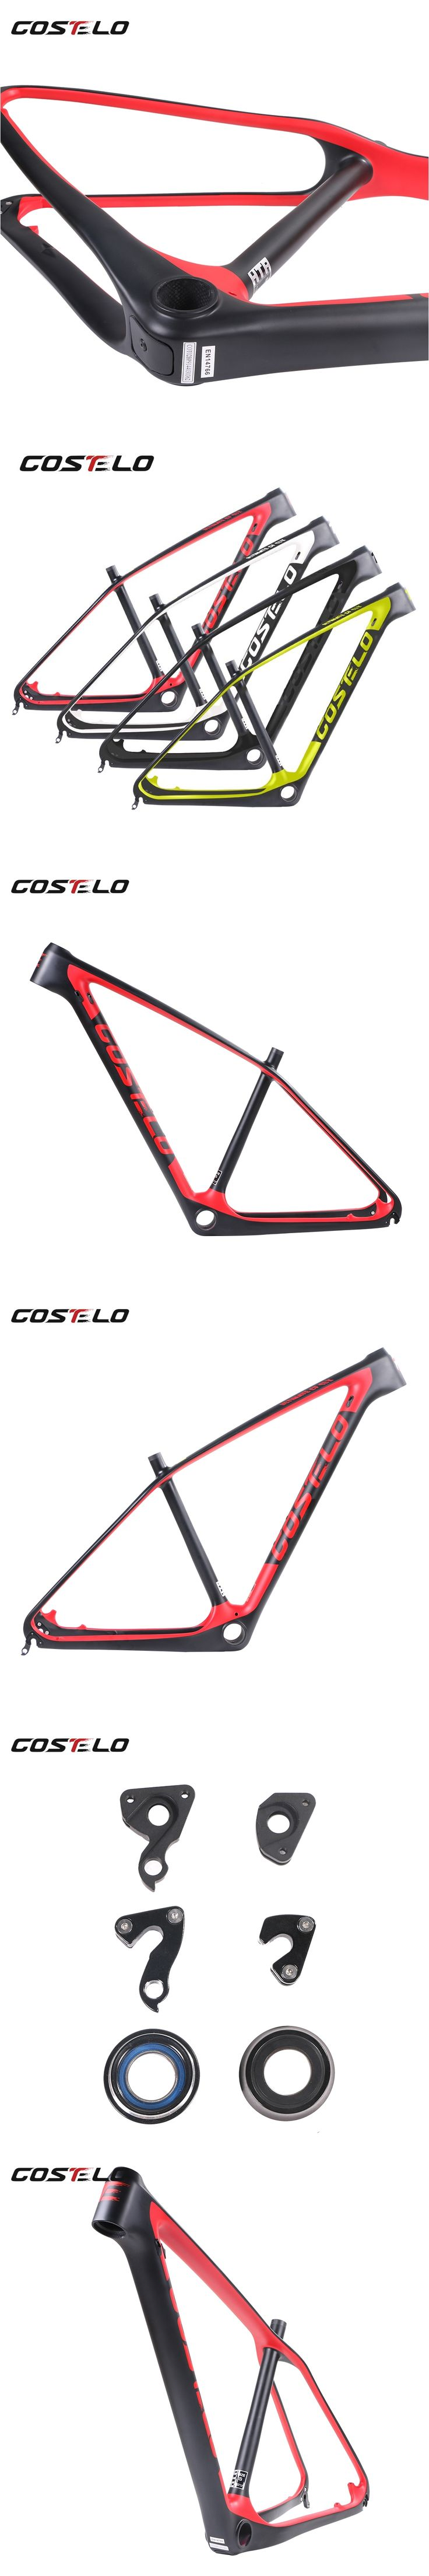 2017 Costelo full carbon ultimate CF Mountain MTB Bicycle Carbon Frame UD Carbon Fiber Bicycle Frame 27.5er 29er bicycle frame